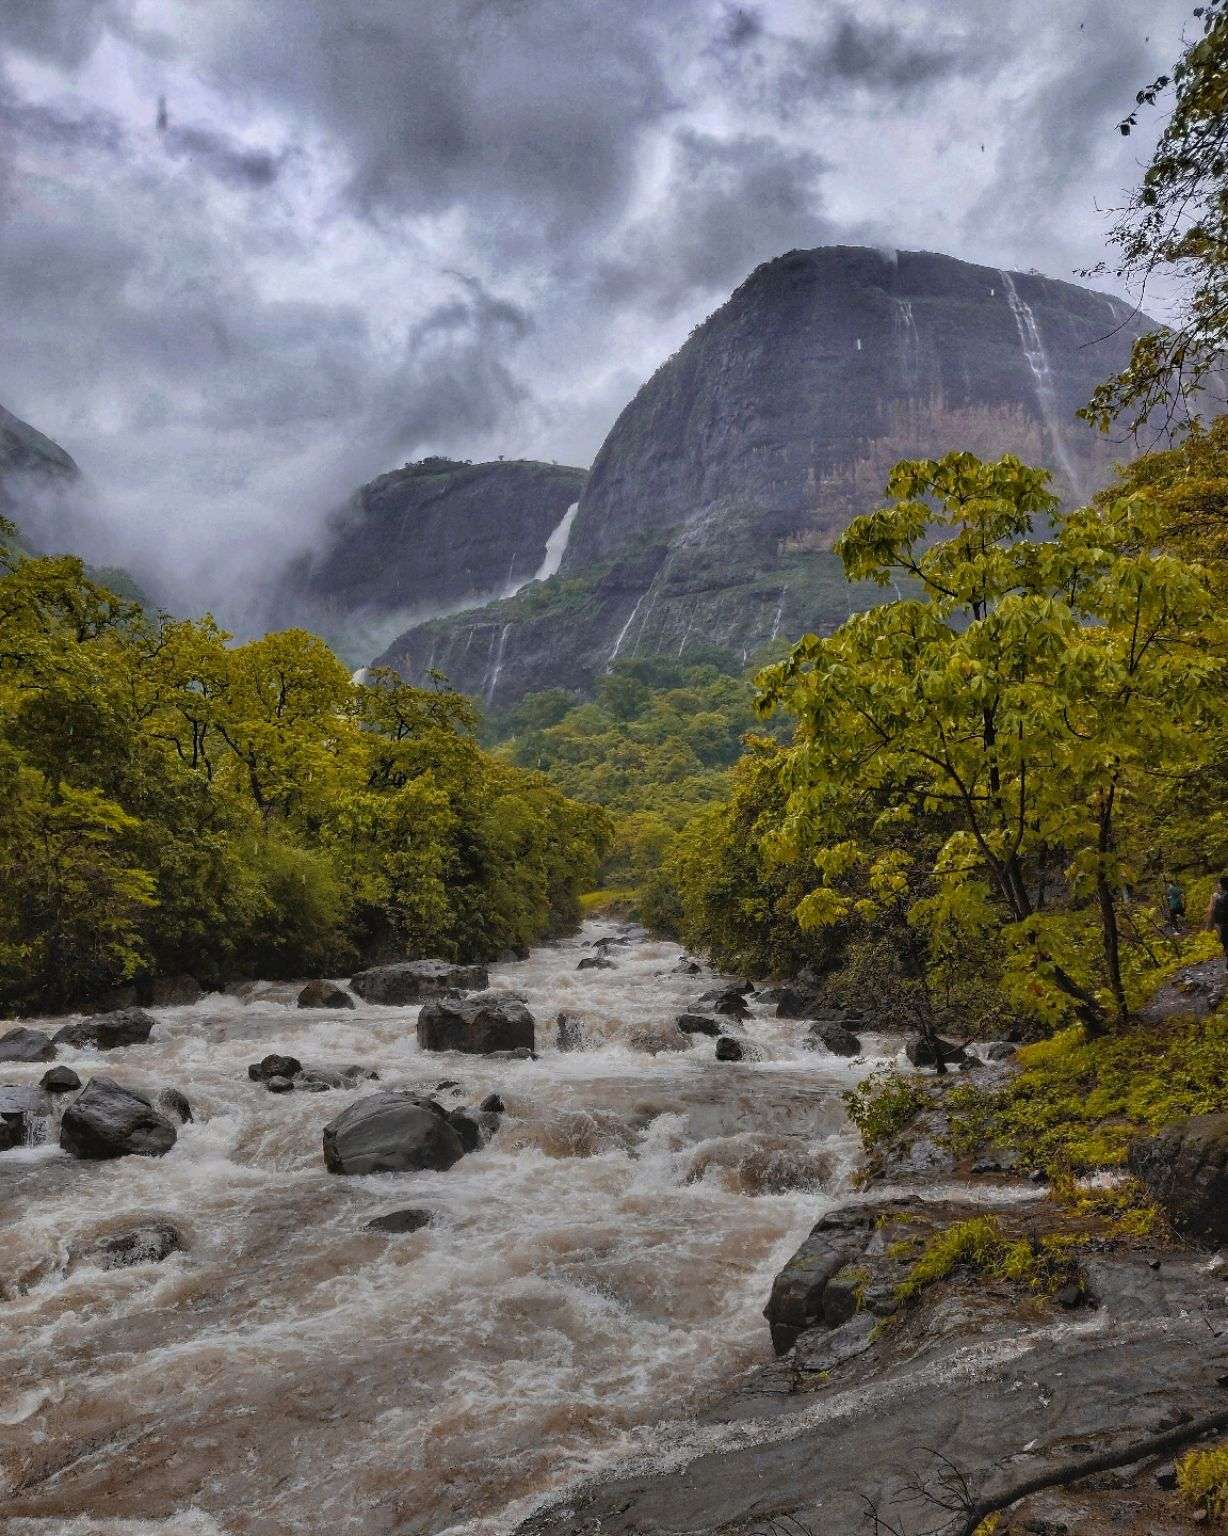 Photo of Tamhini Ghat Waterfall By toshith naidu